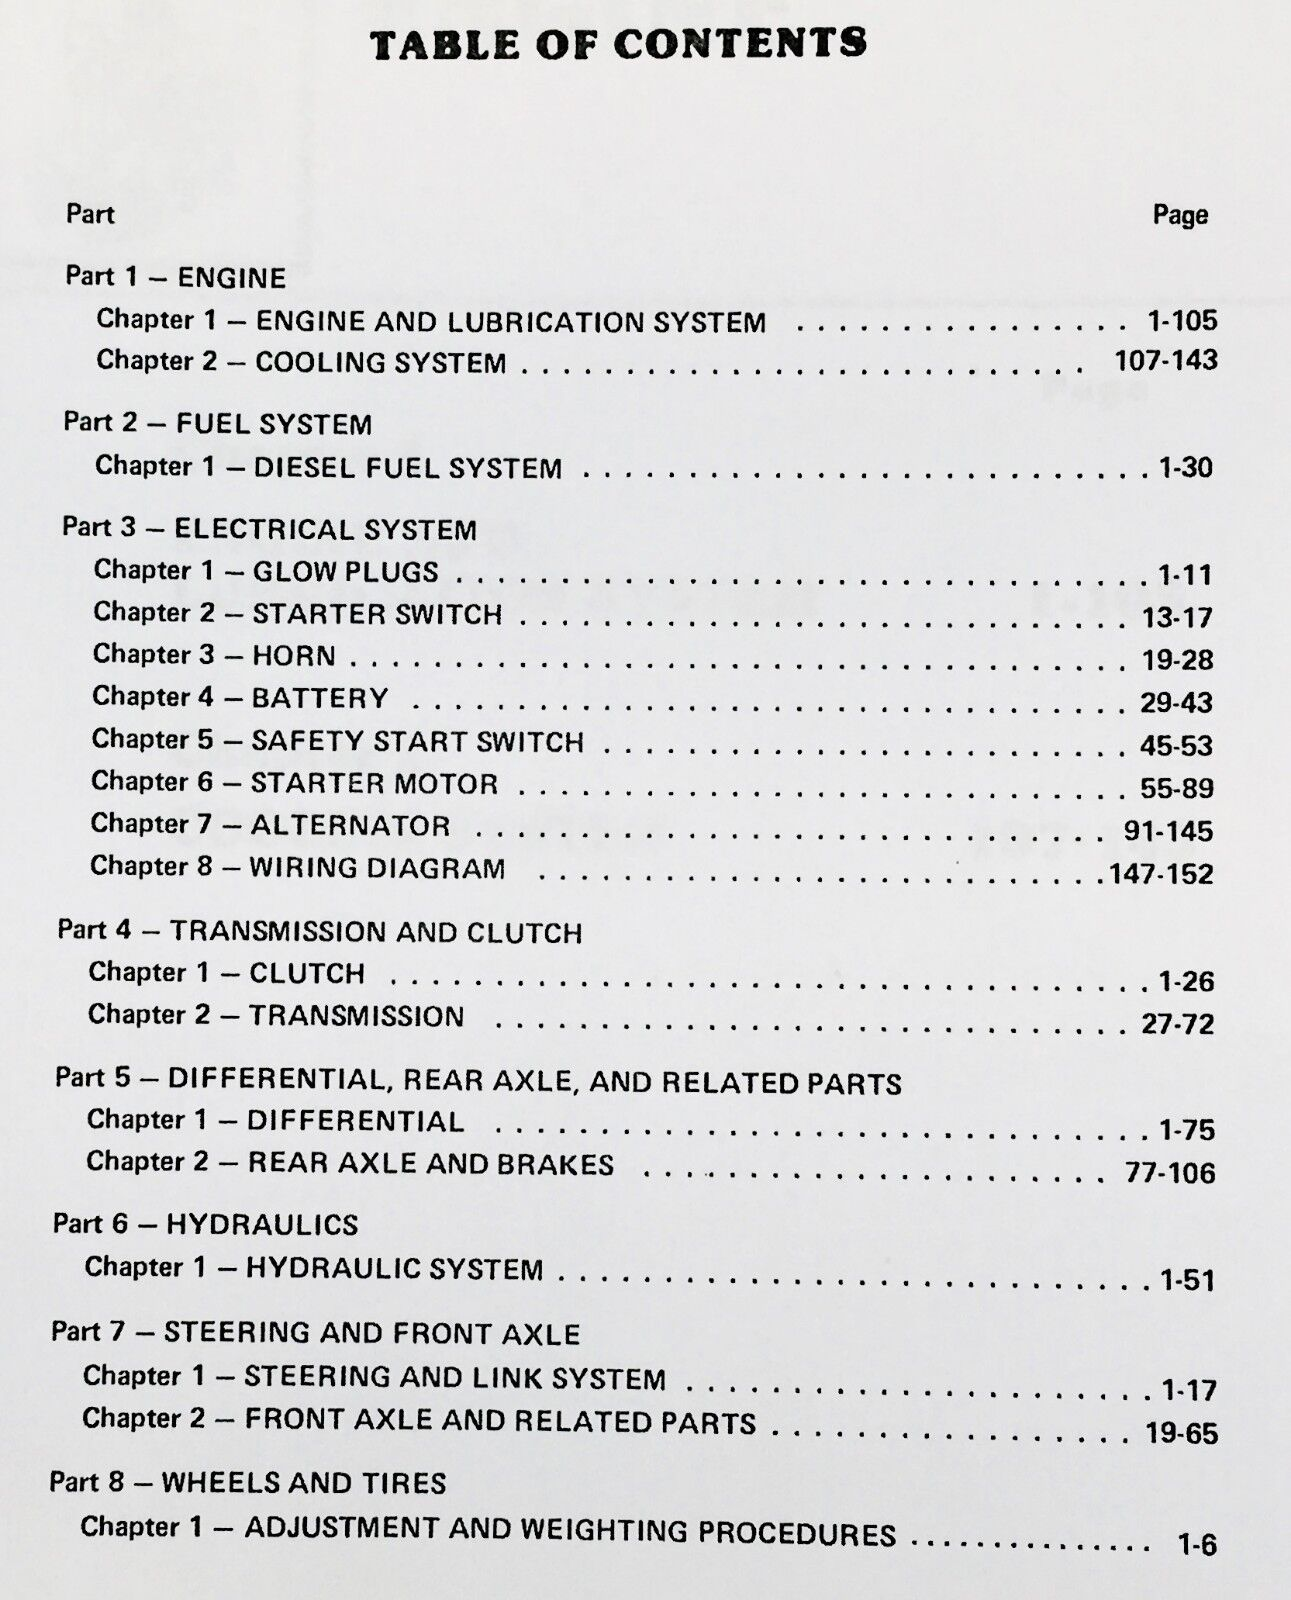 Ford 1000 Series Tractors Factory Repair Manual Se 3771 A0005 Ebay 5600 Starter Wire Diagram Norton Secured Powered By Verisign